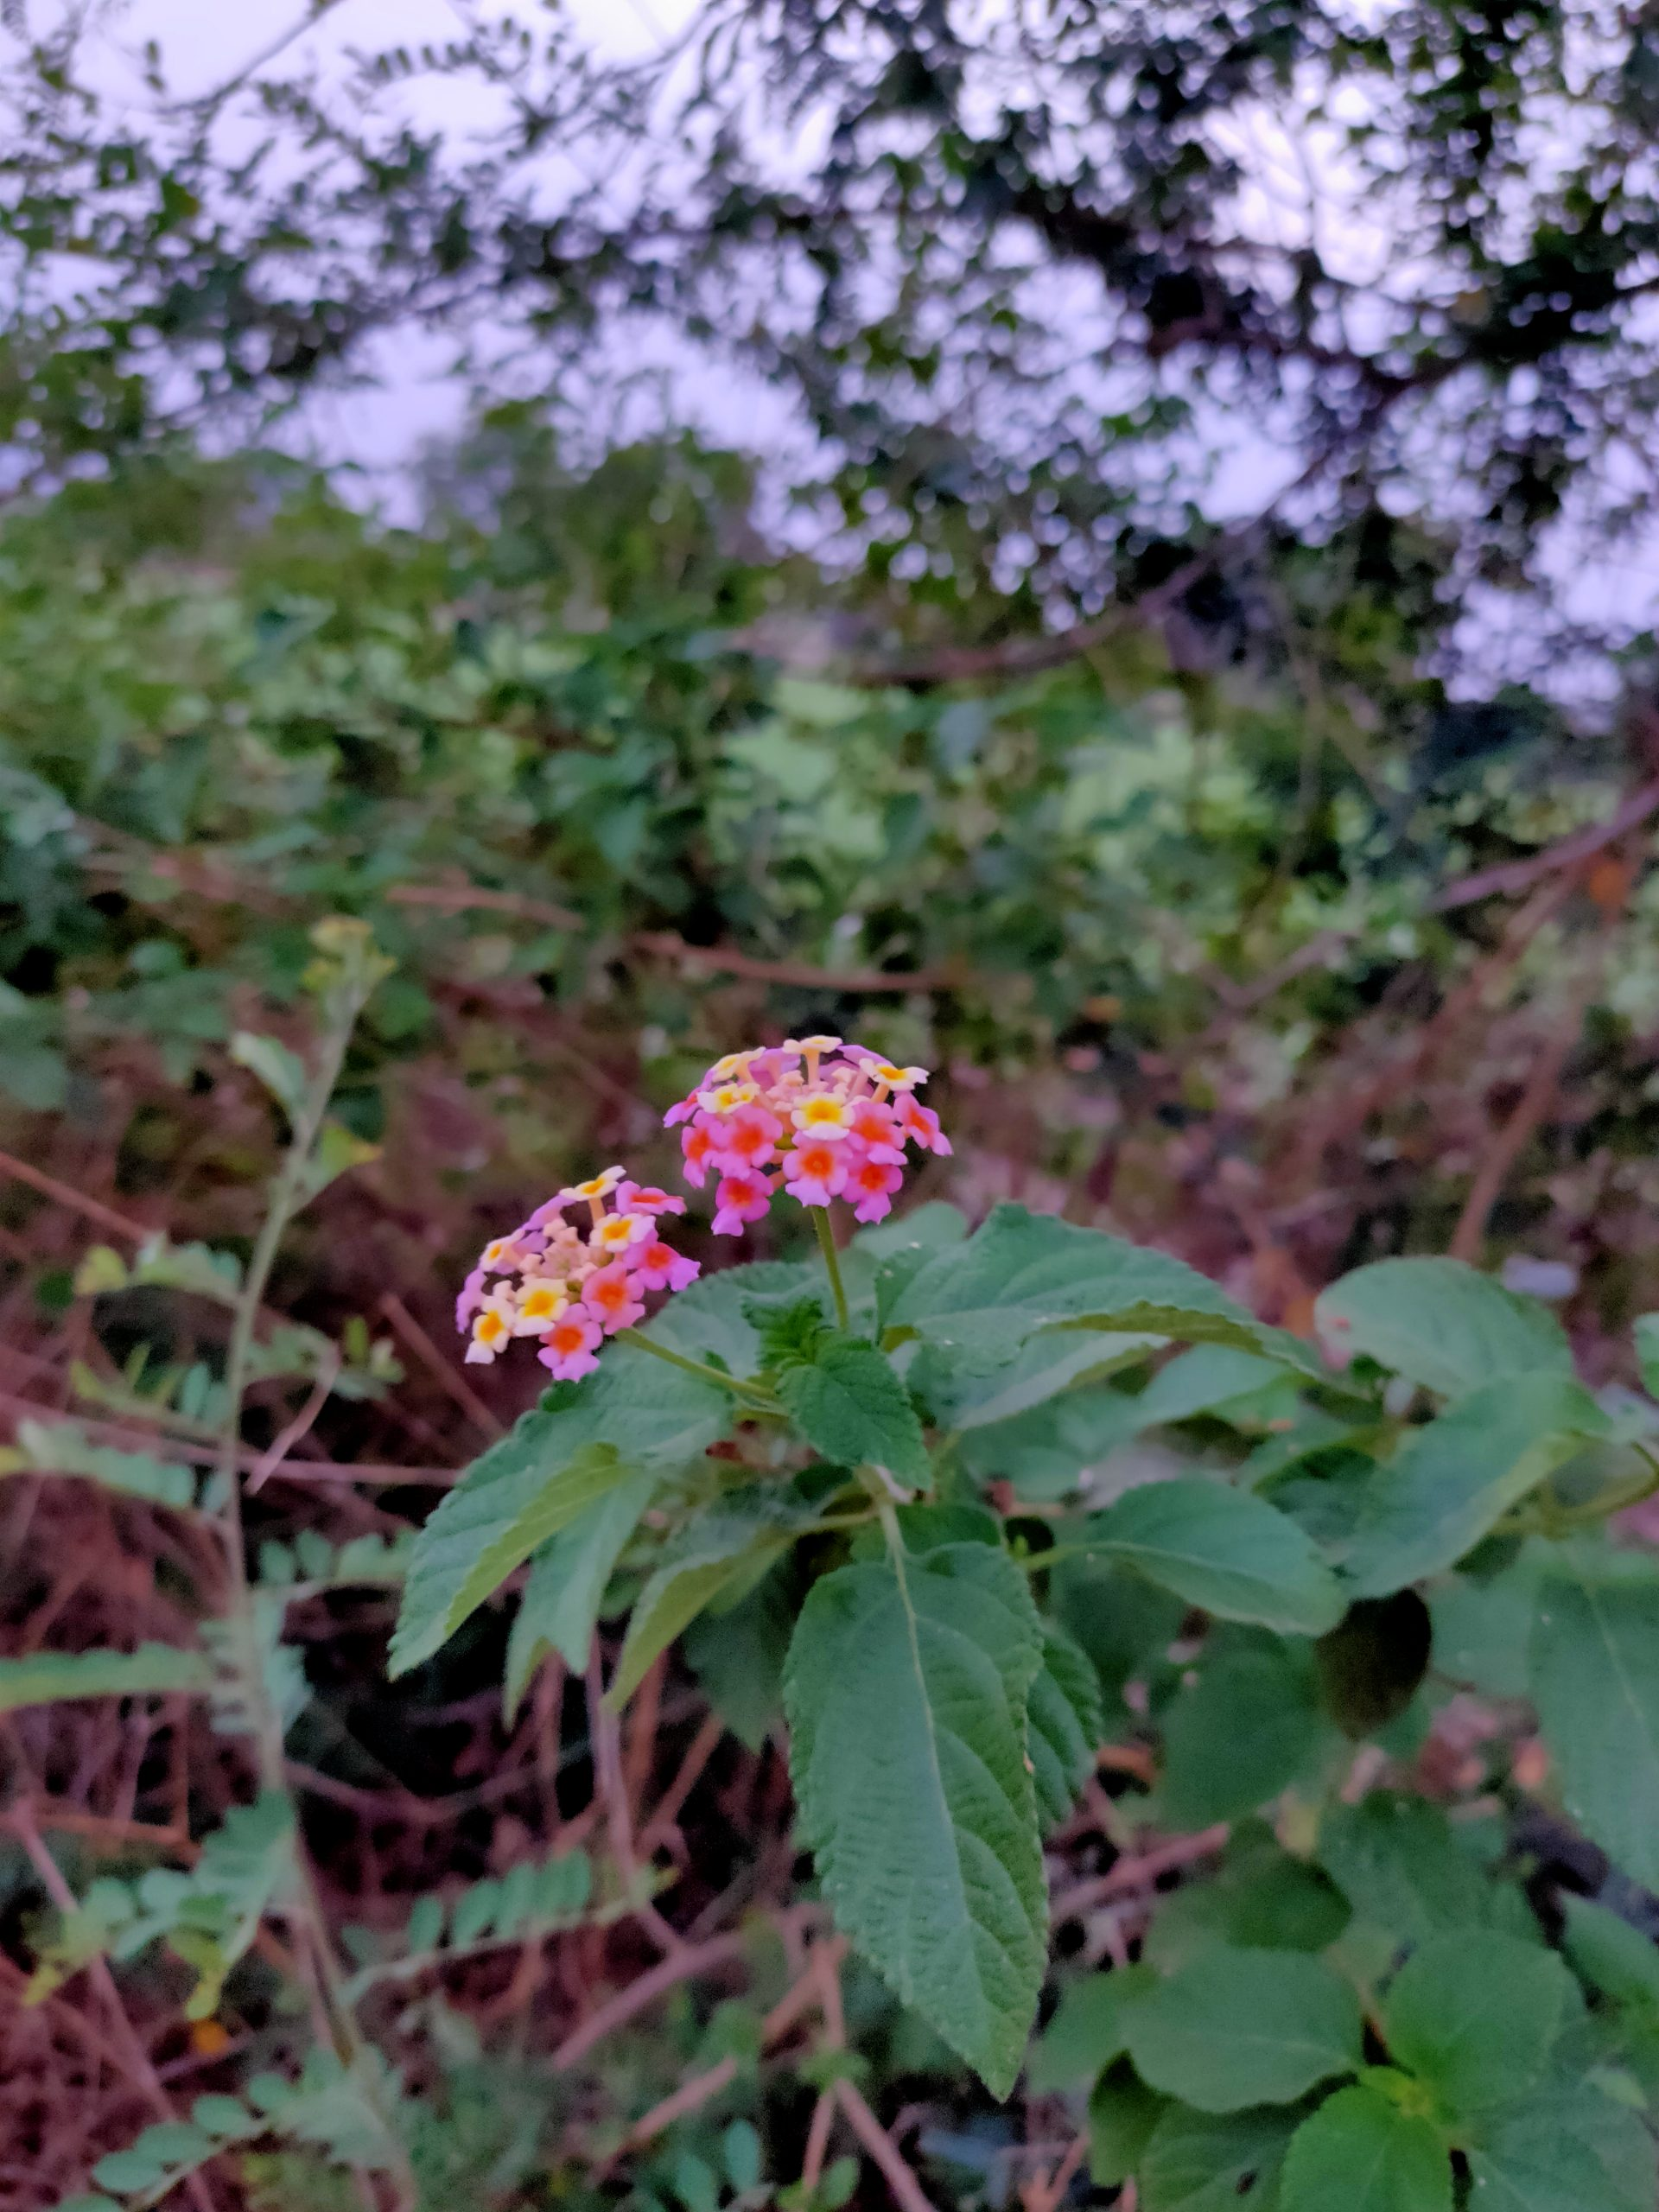 Wild flower on the plant